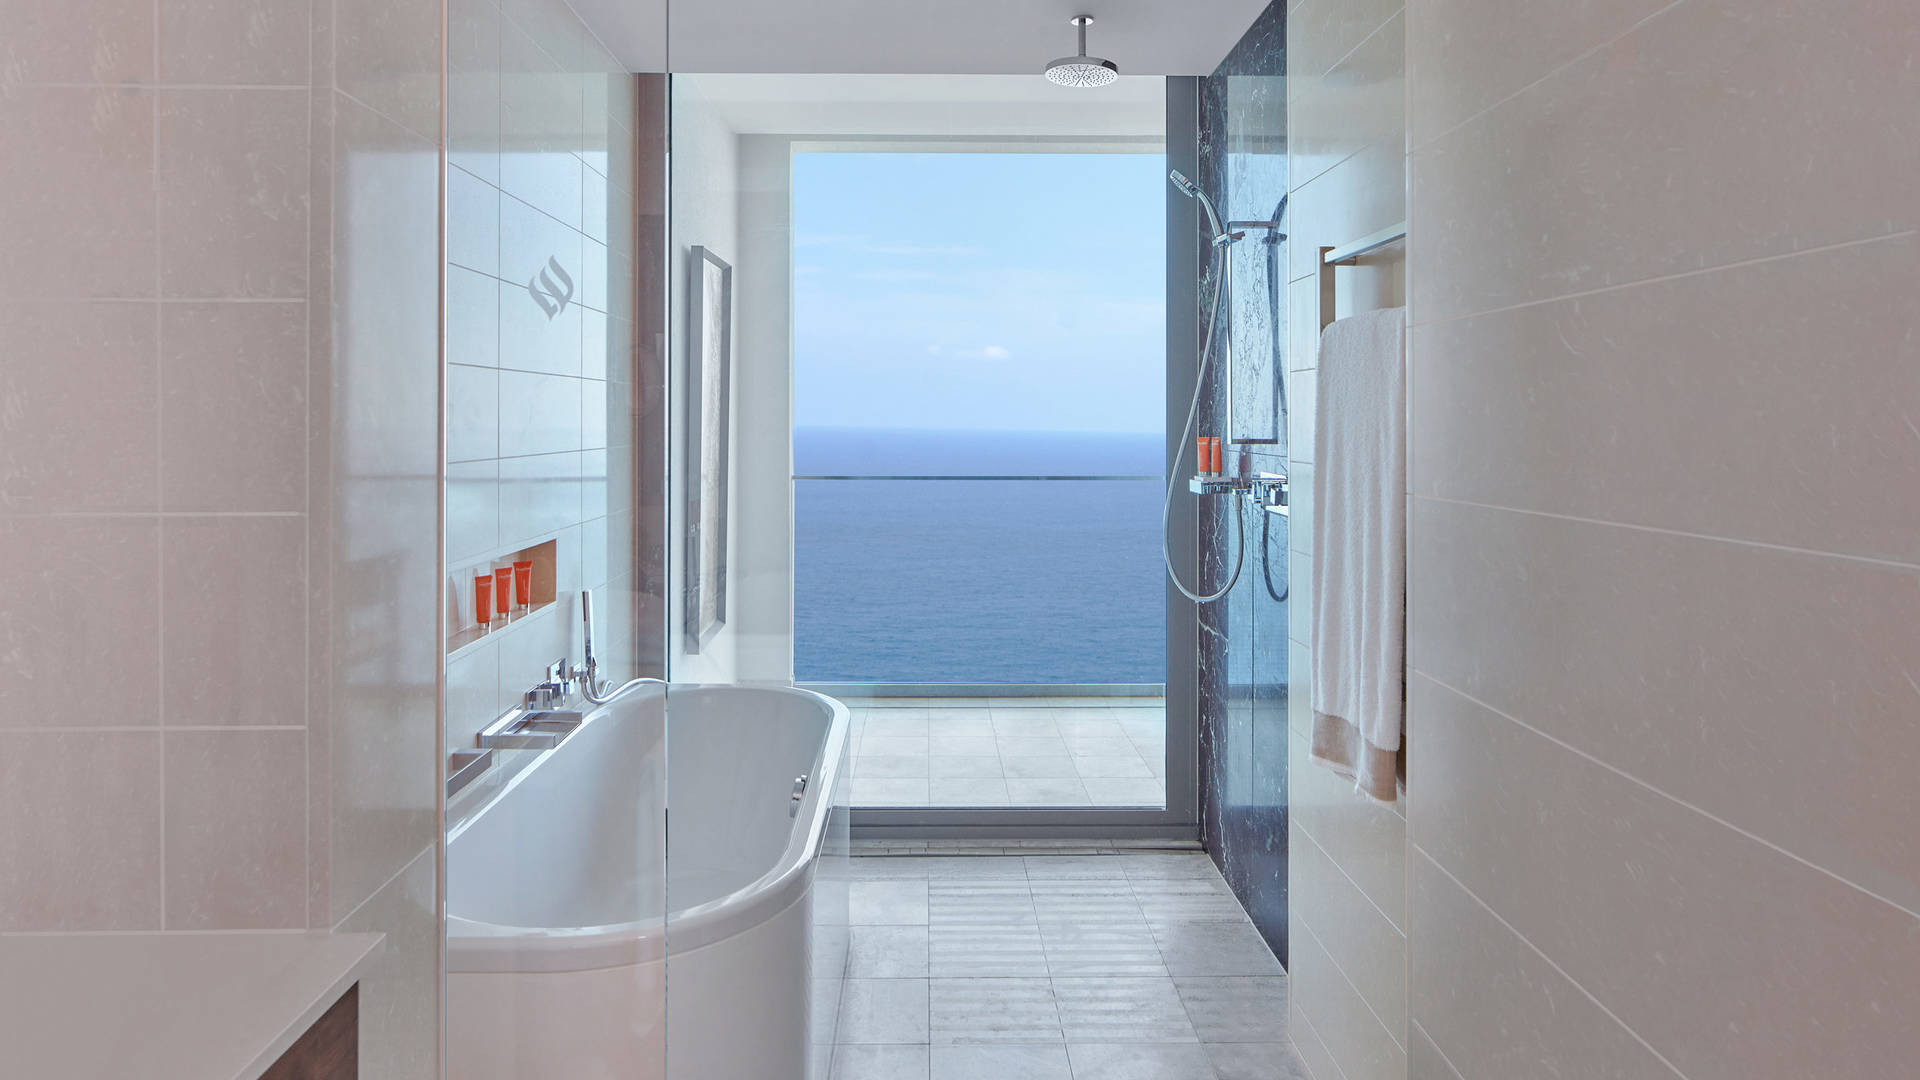 Jumeirah bathroom views port soller_16-9